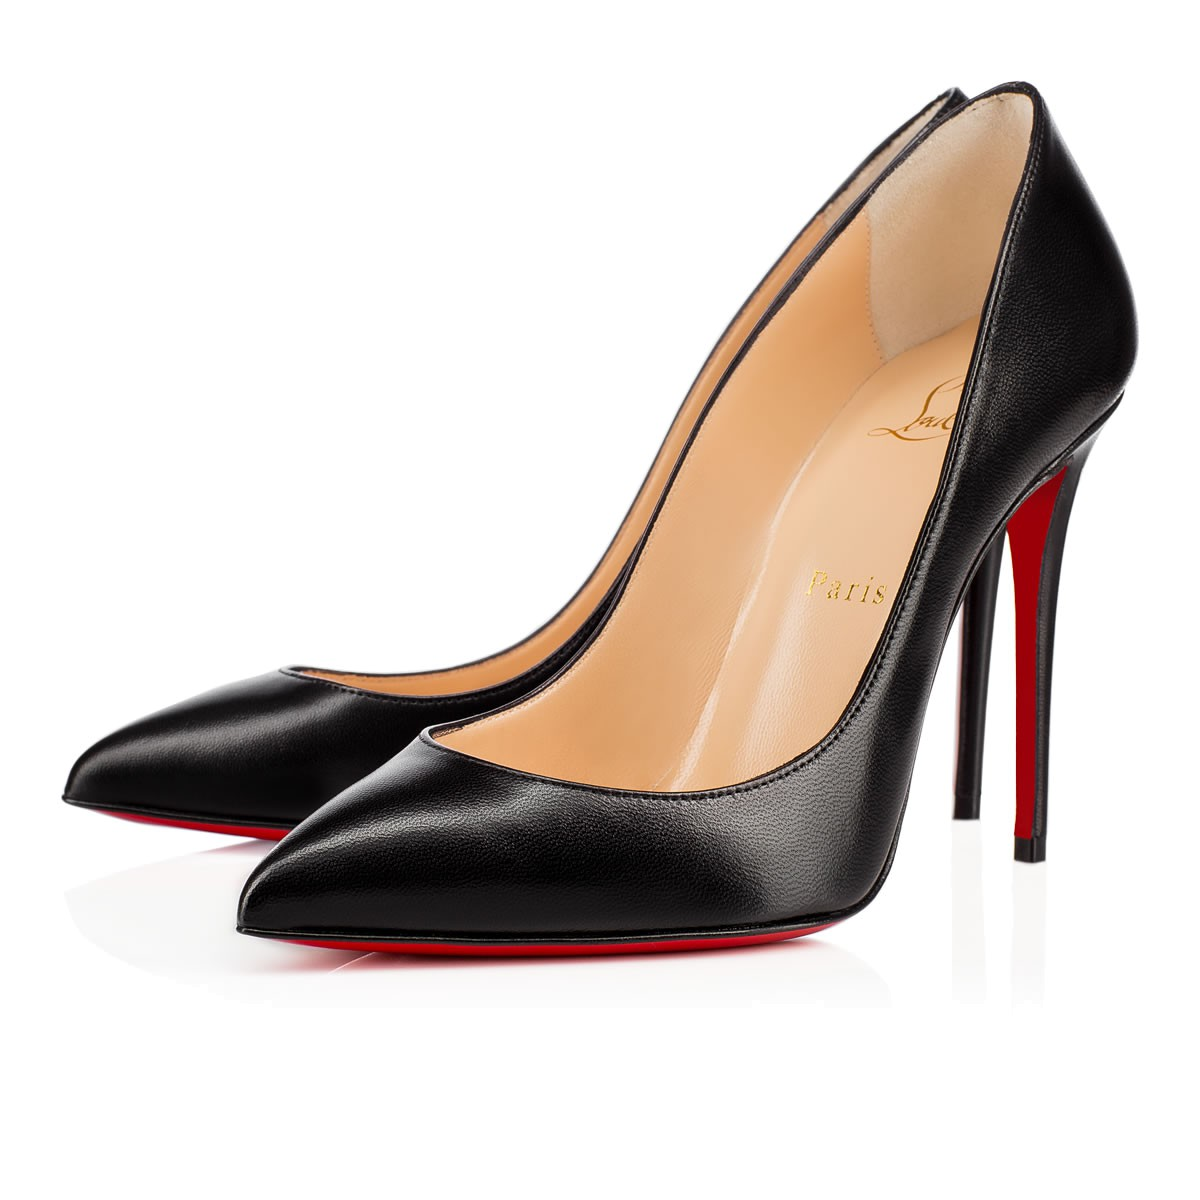 a907ca286978 Shoes - Pigalle Follies - Christian Louboutin ...